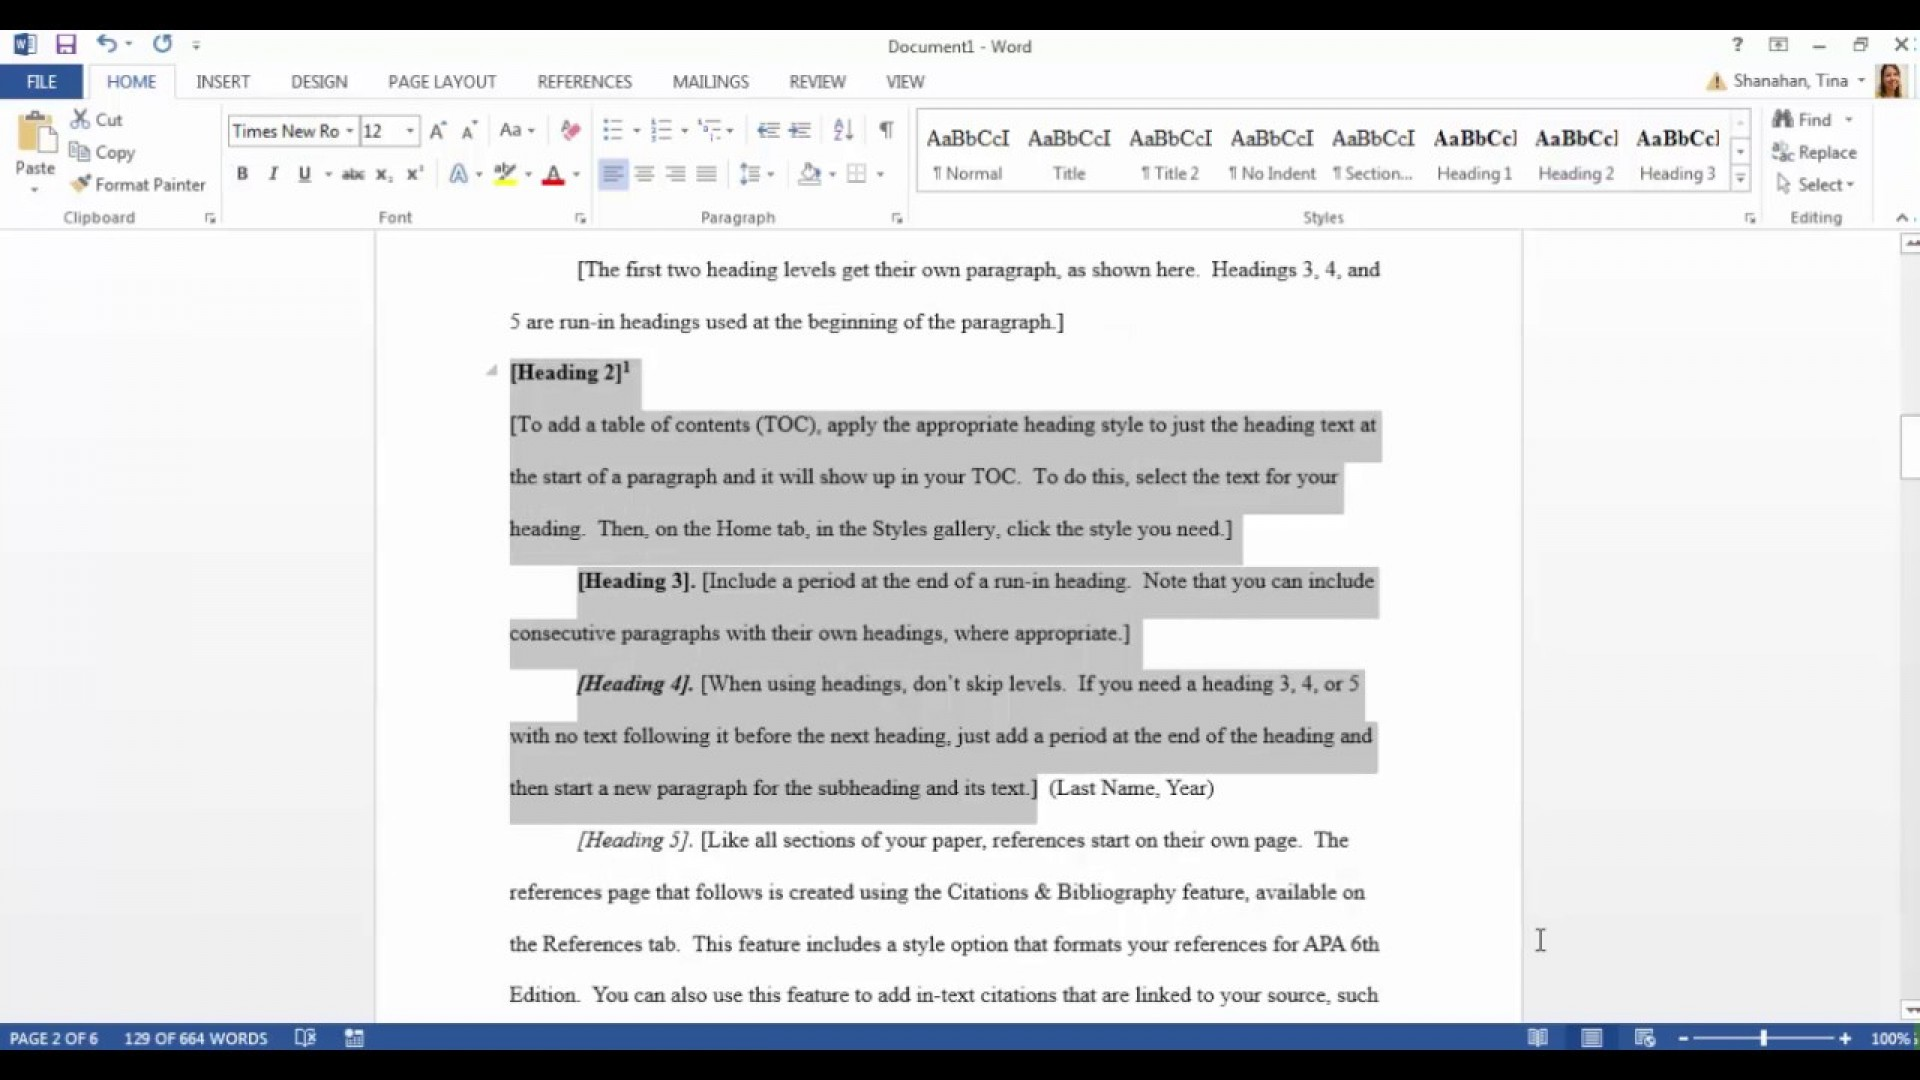 018 Maxresdefault Apa Essay Template Best Outline Style Structure Format Word 2007 1920